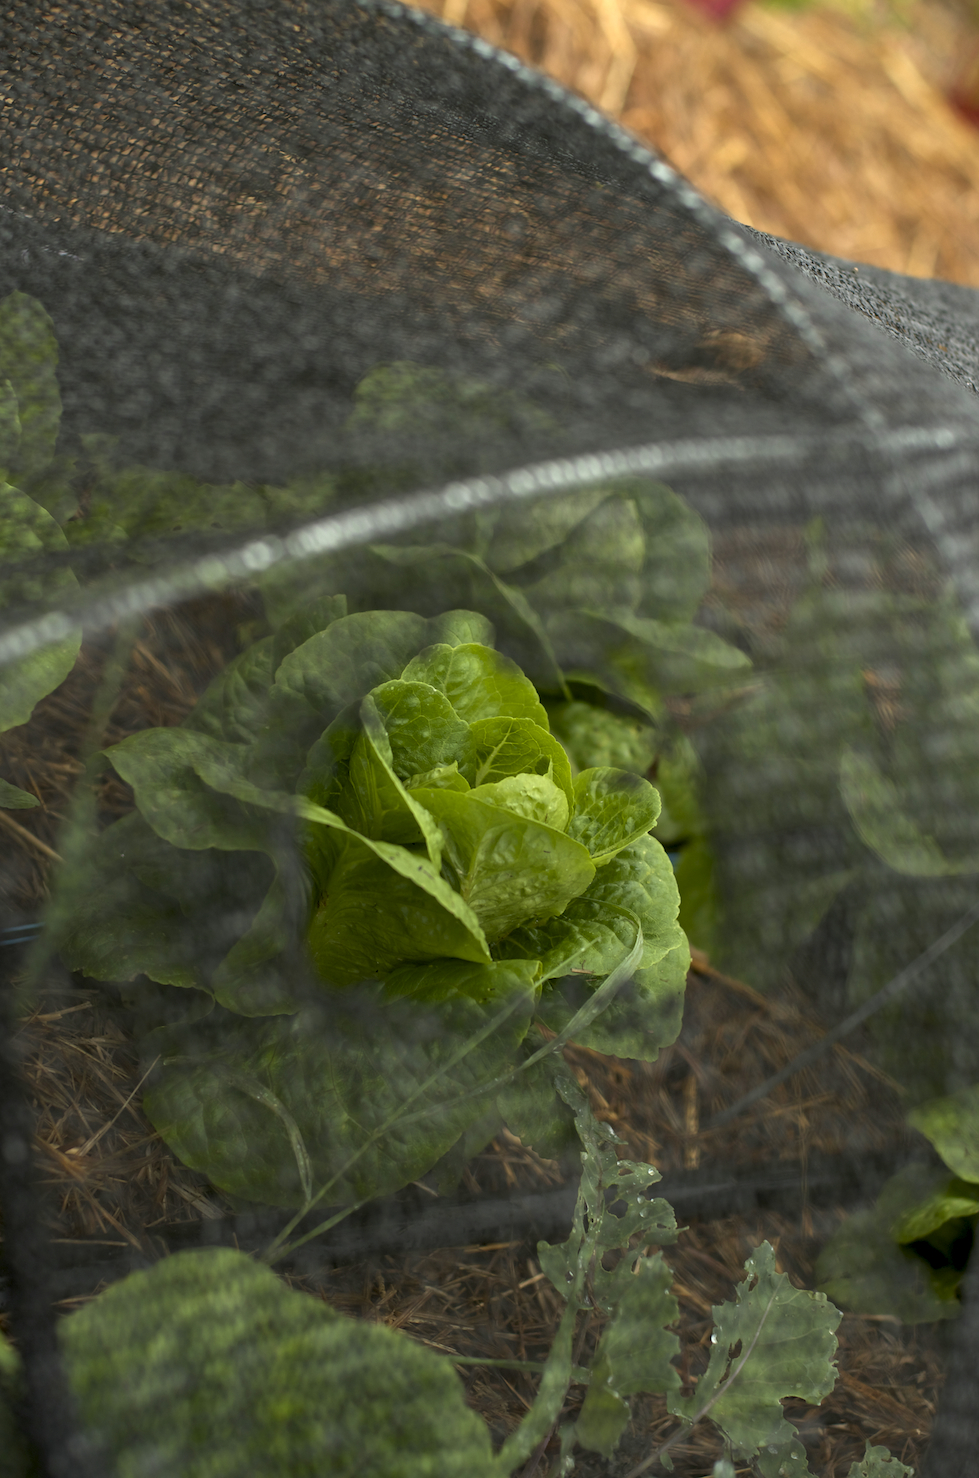 [Close up of butter lettuce head visible through a tear in the black mesh cover.]